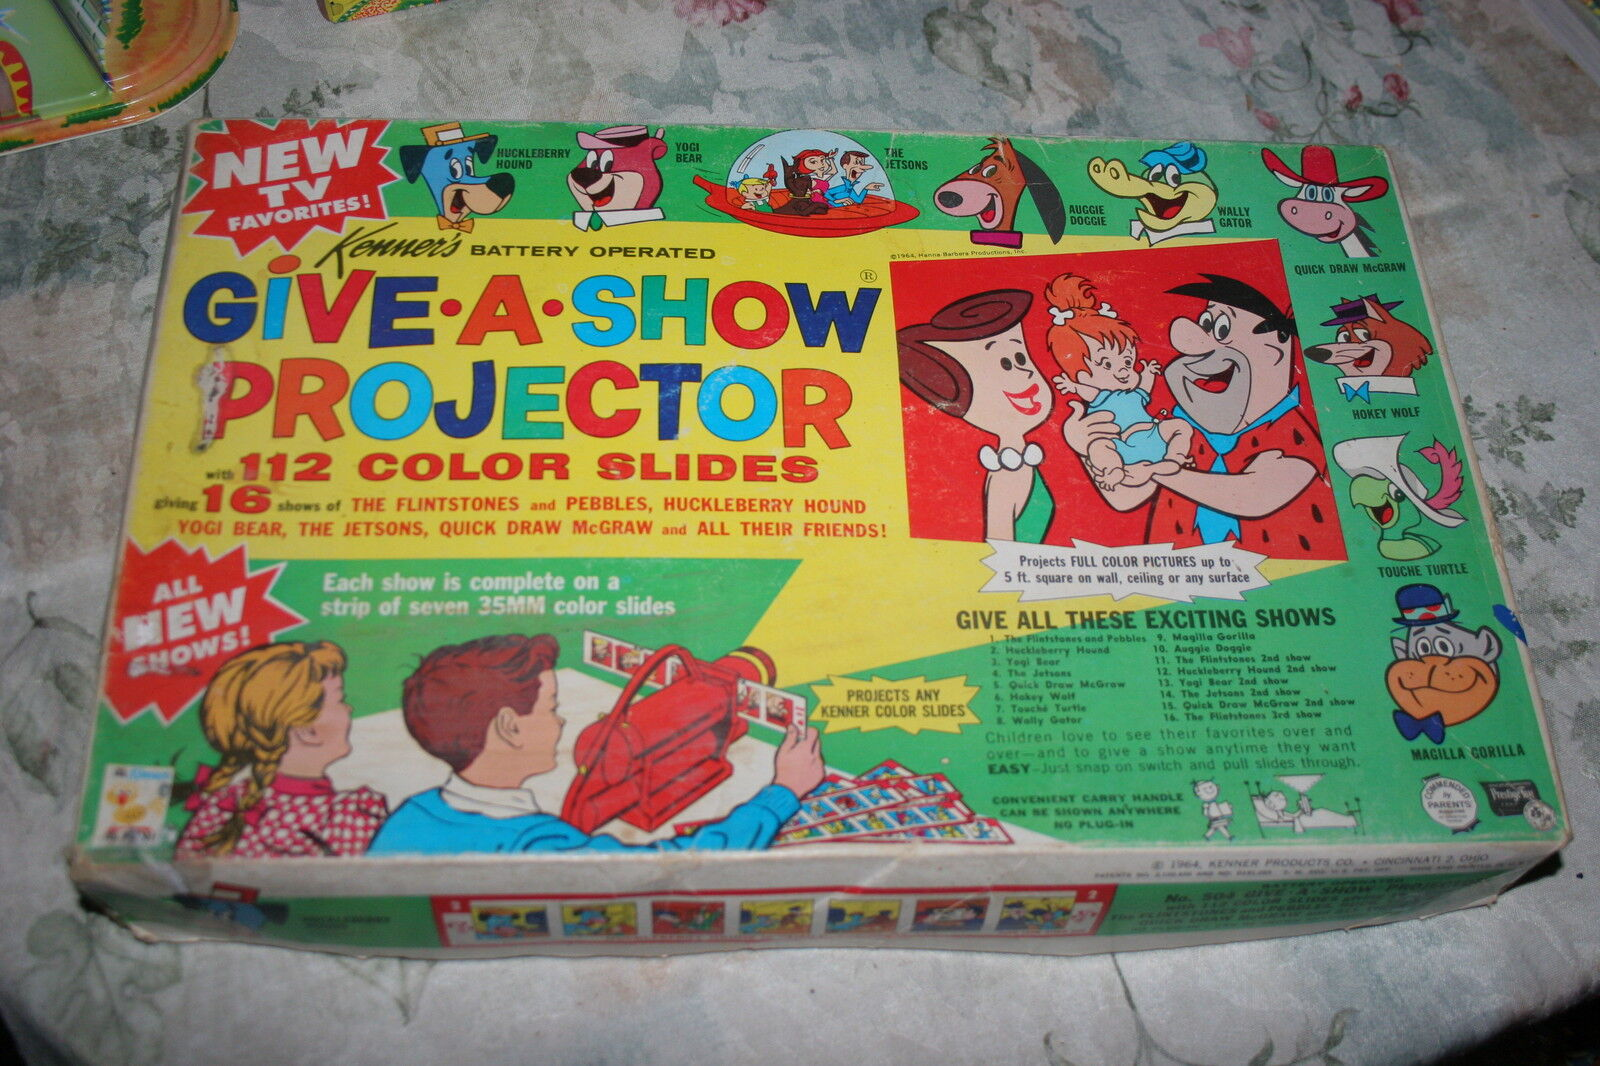 1964 KENNERS PROJECTOR SET W  112 COLOR SLIDES WITH 16 SHOWS + EXTRAS